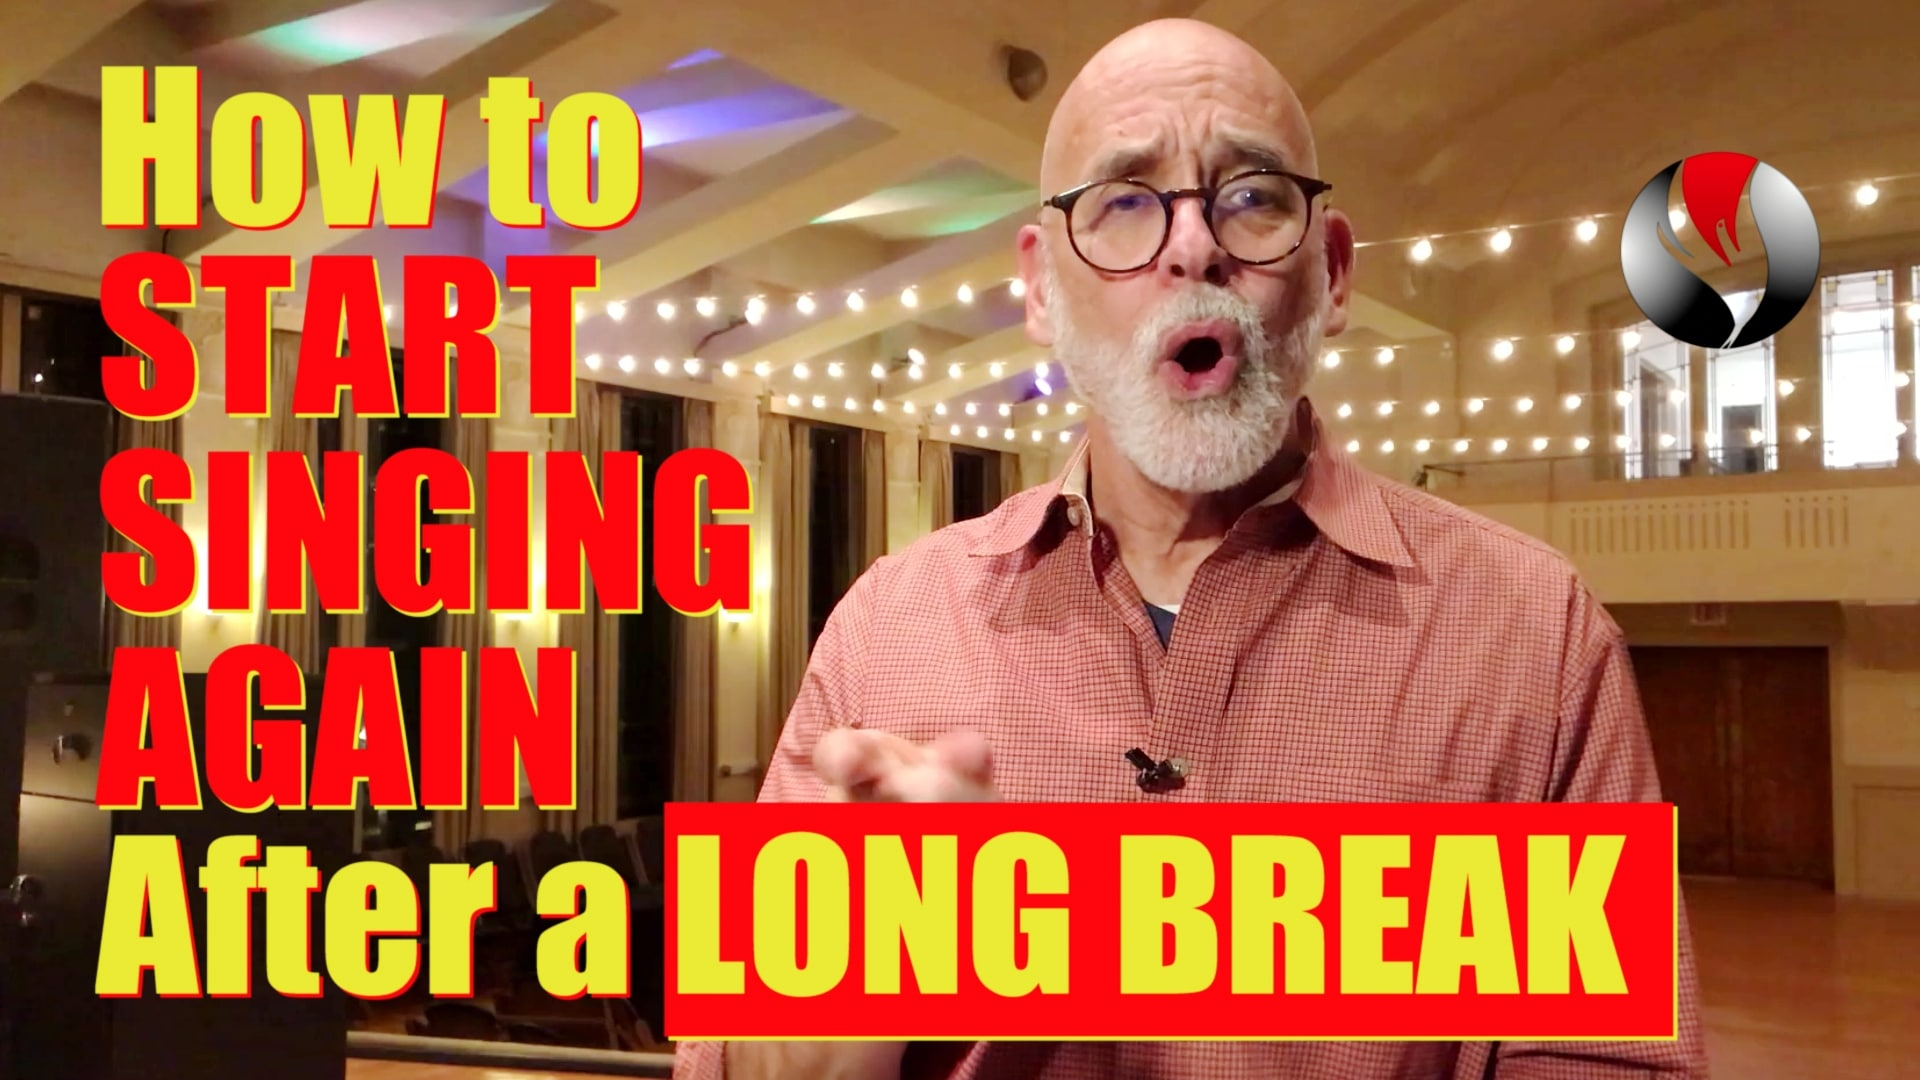 How To Start Singing Again After A Long Break – Quickly Recondition Voice with 4 Exercises